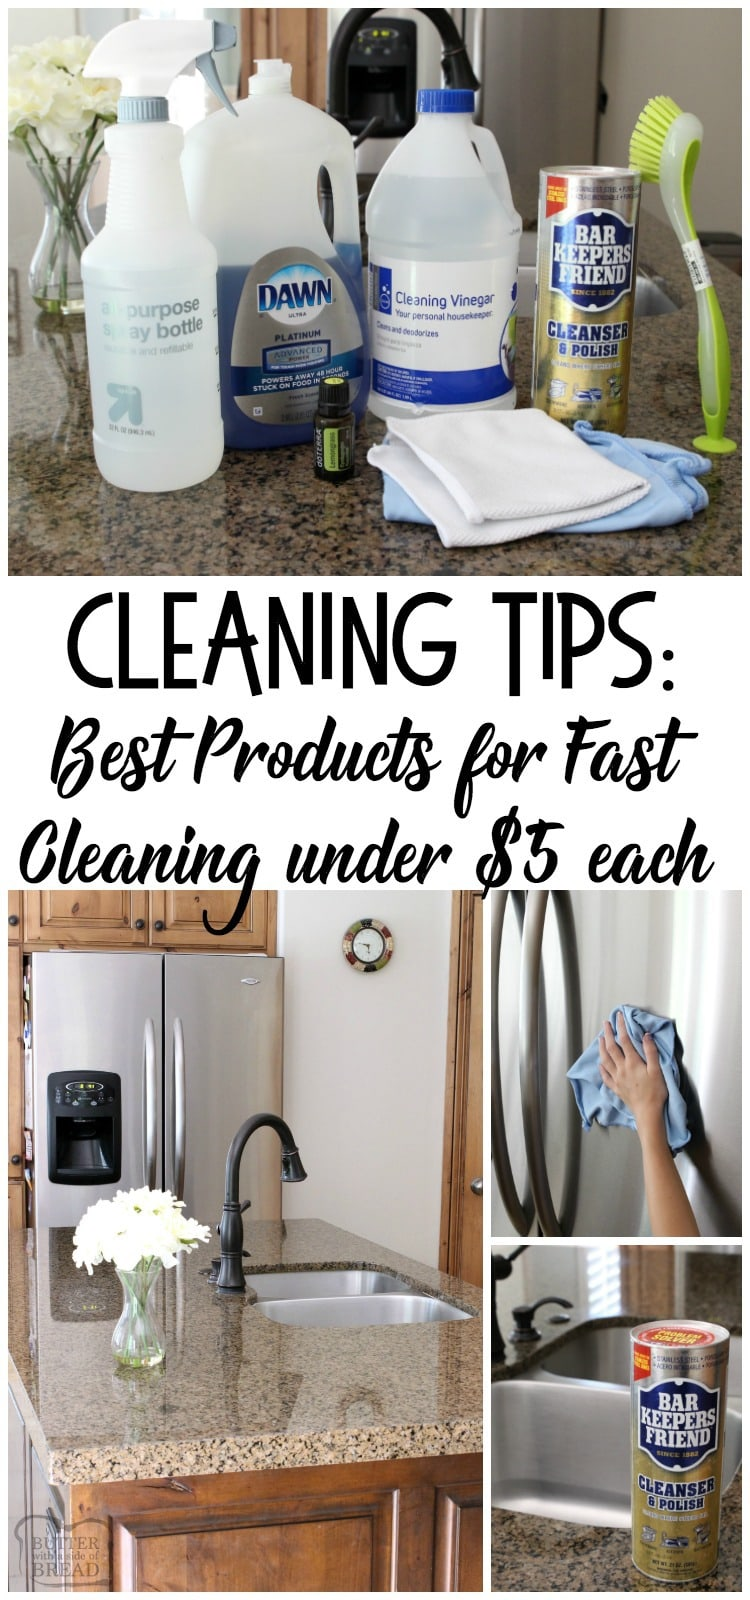 Cleaning tips and a list of best #cleaning #products that help your #home stay #clean and smell fresh. Featuring five of my favorite cleaning tools for $2 each! Plus my favorite #mop EVER! Come learn how to clean your #house better! #cleaningtips #cleaningproducts #cleanyourhouse